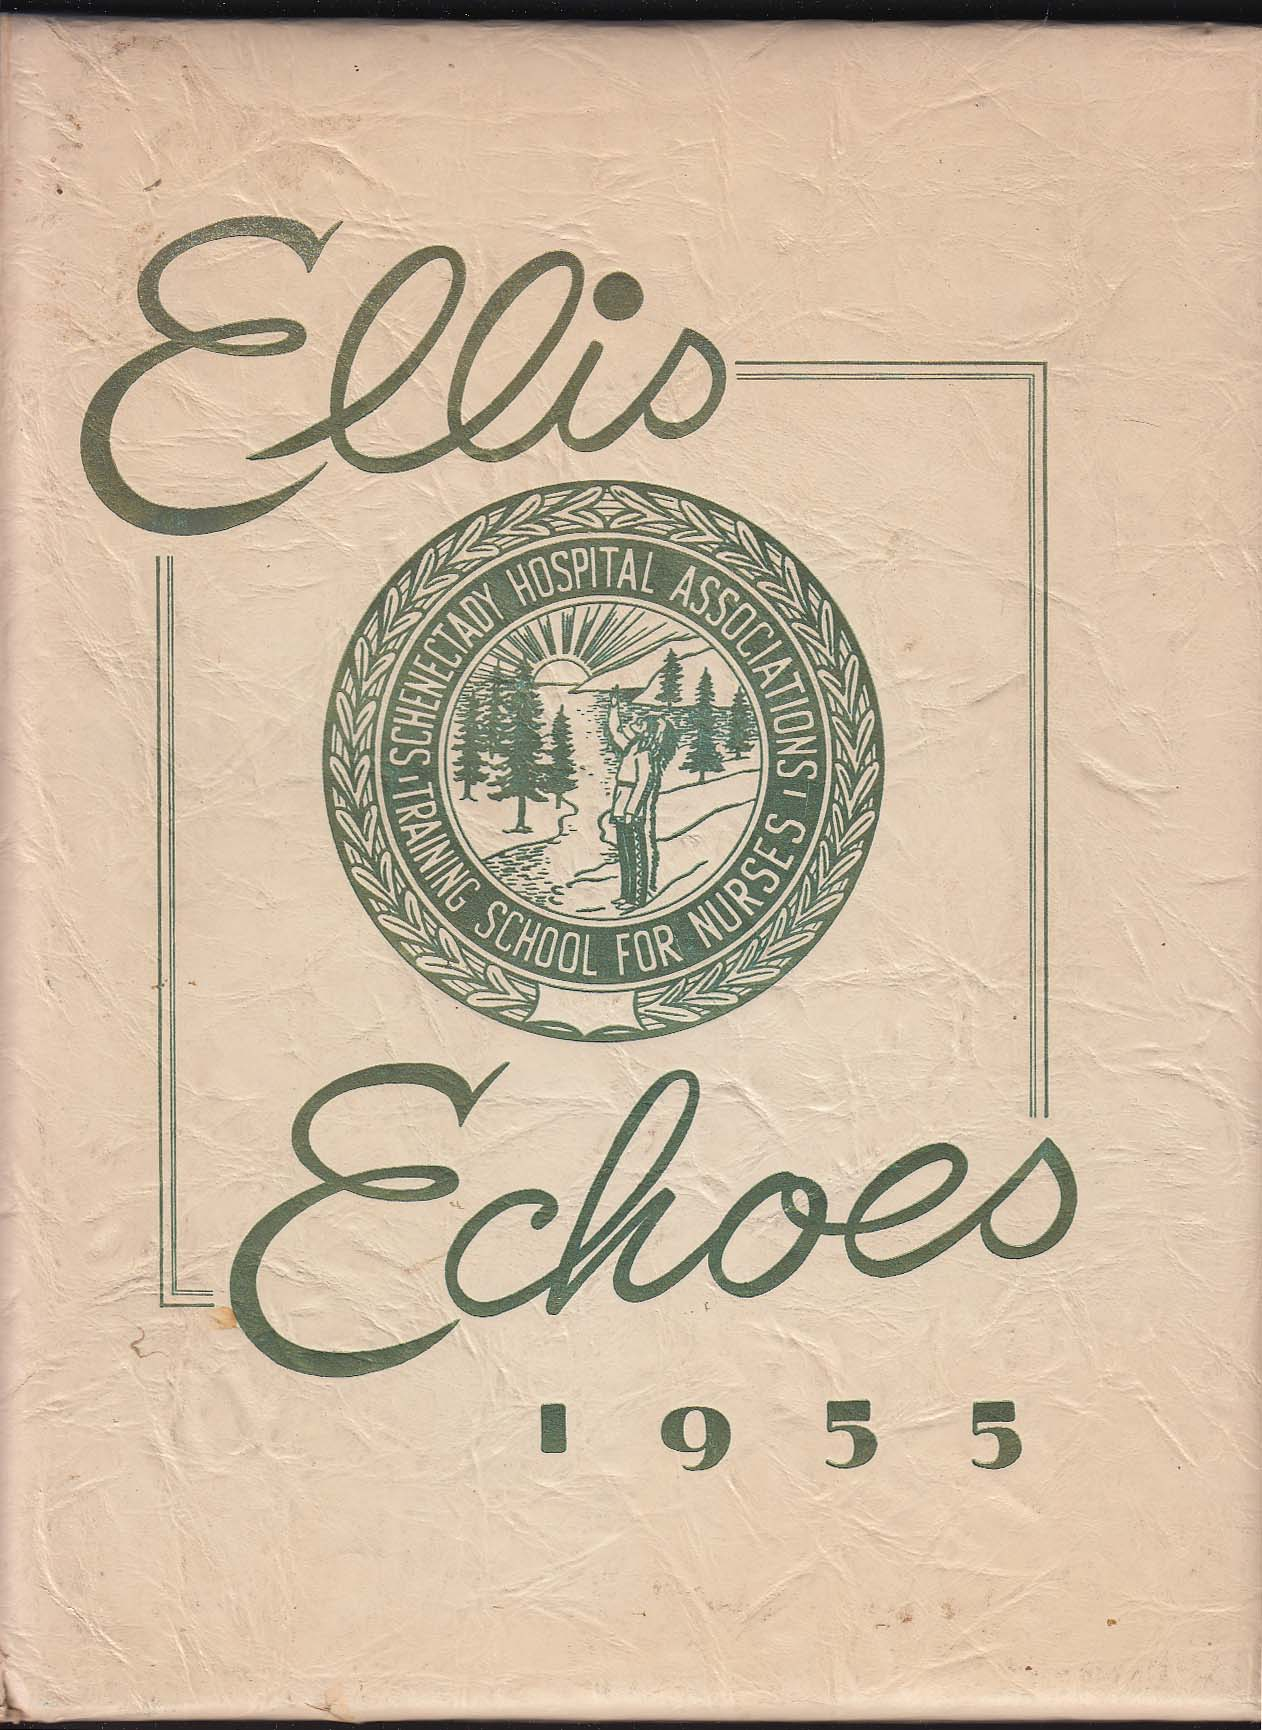 Image for Ellis Echoes 1955 Yearbook Schenectady Hospital Assn Nurses Training School NY